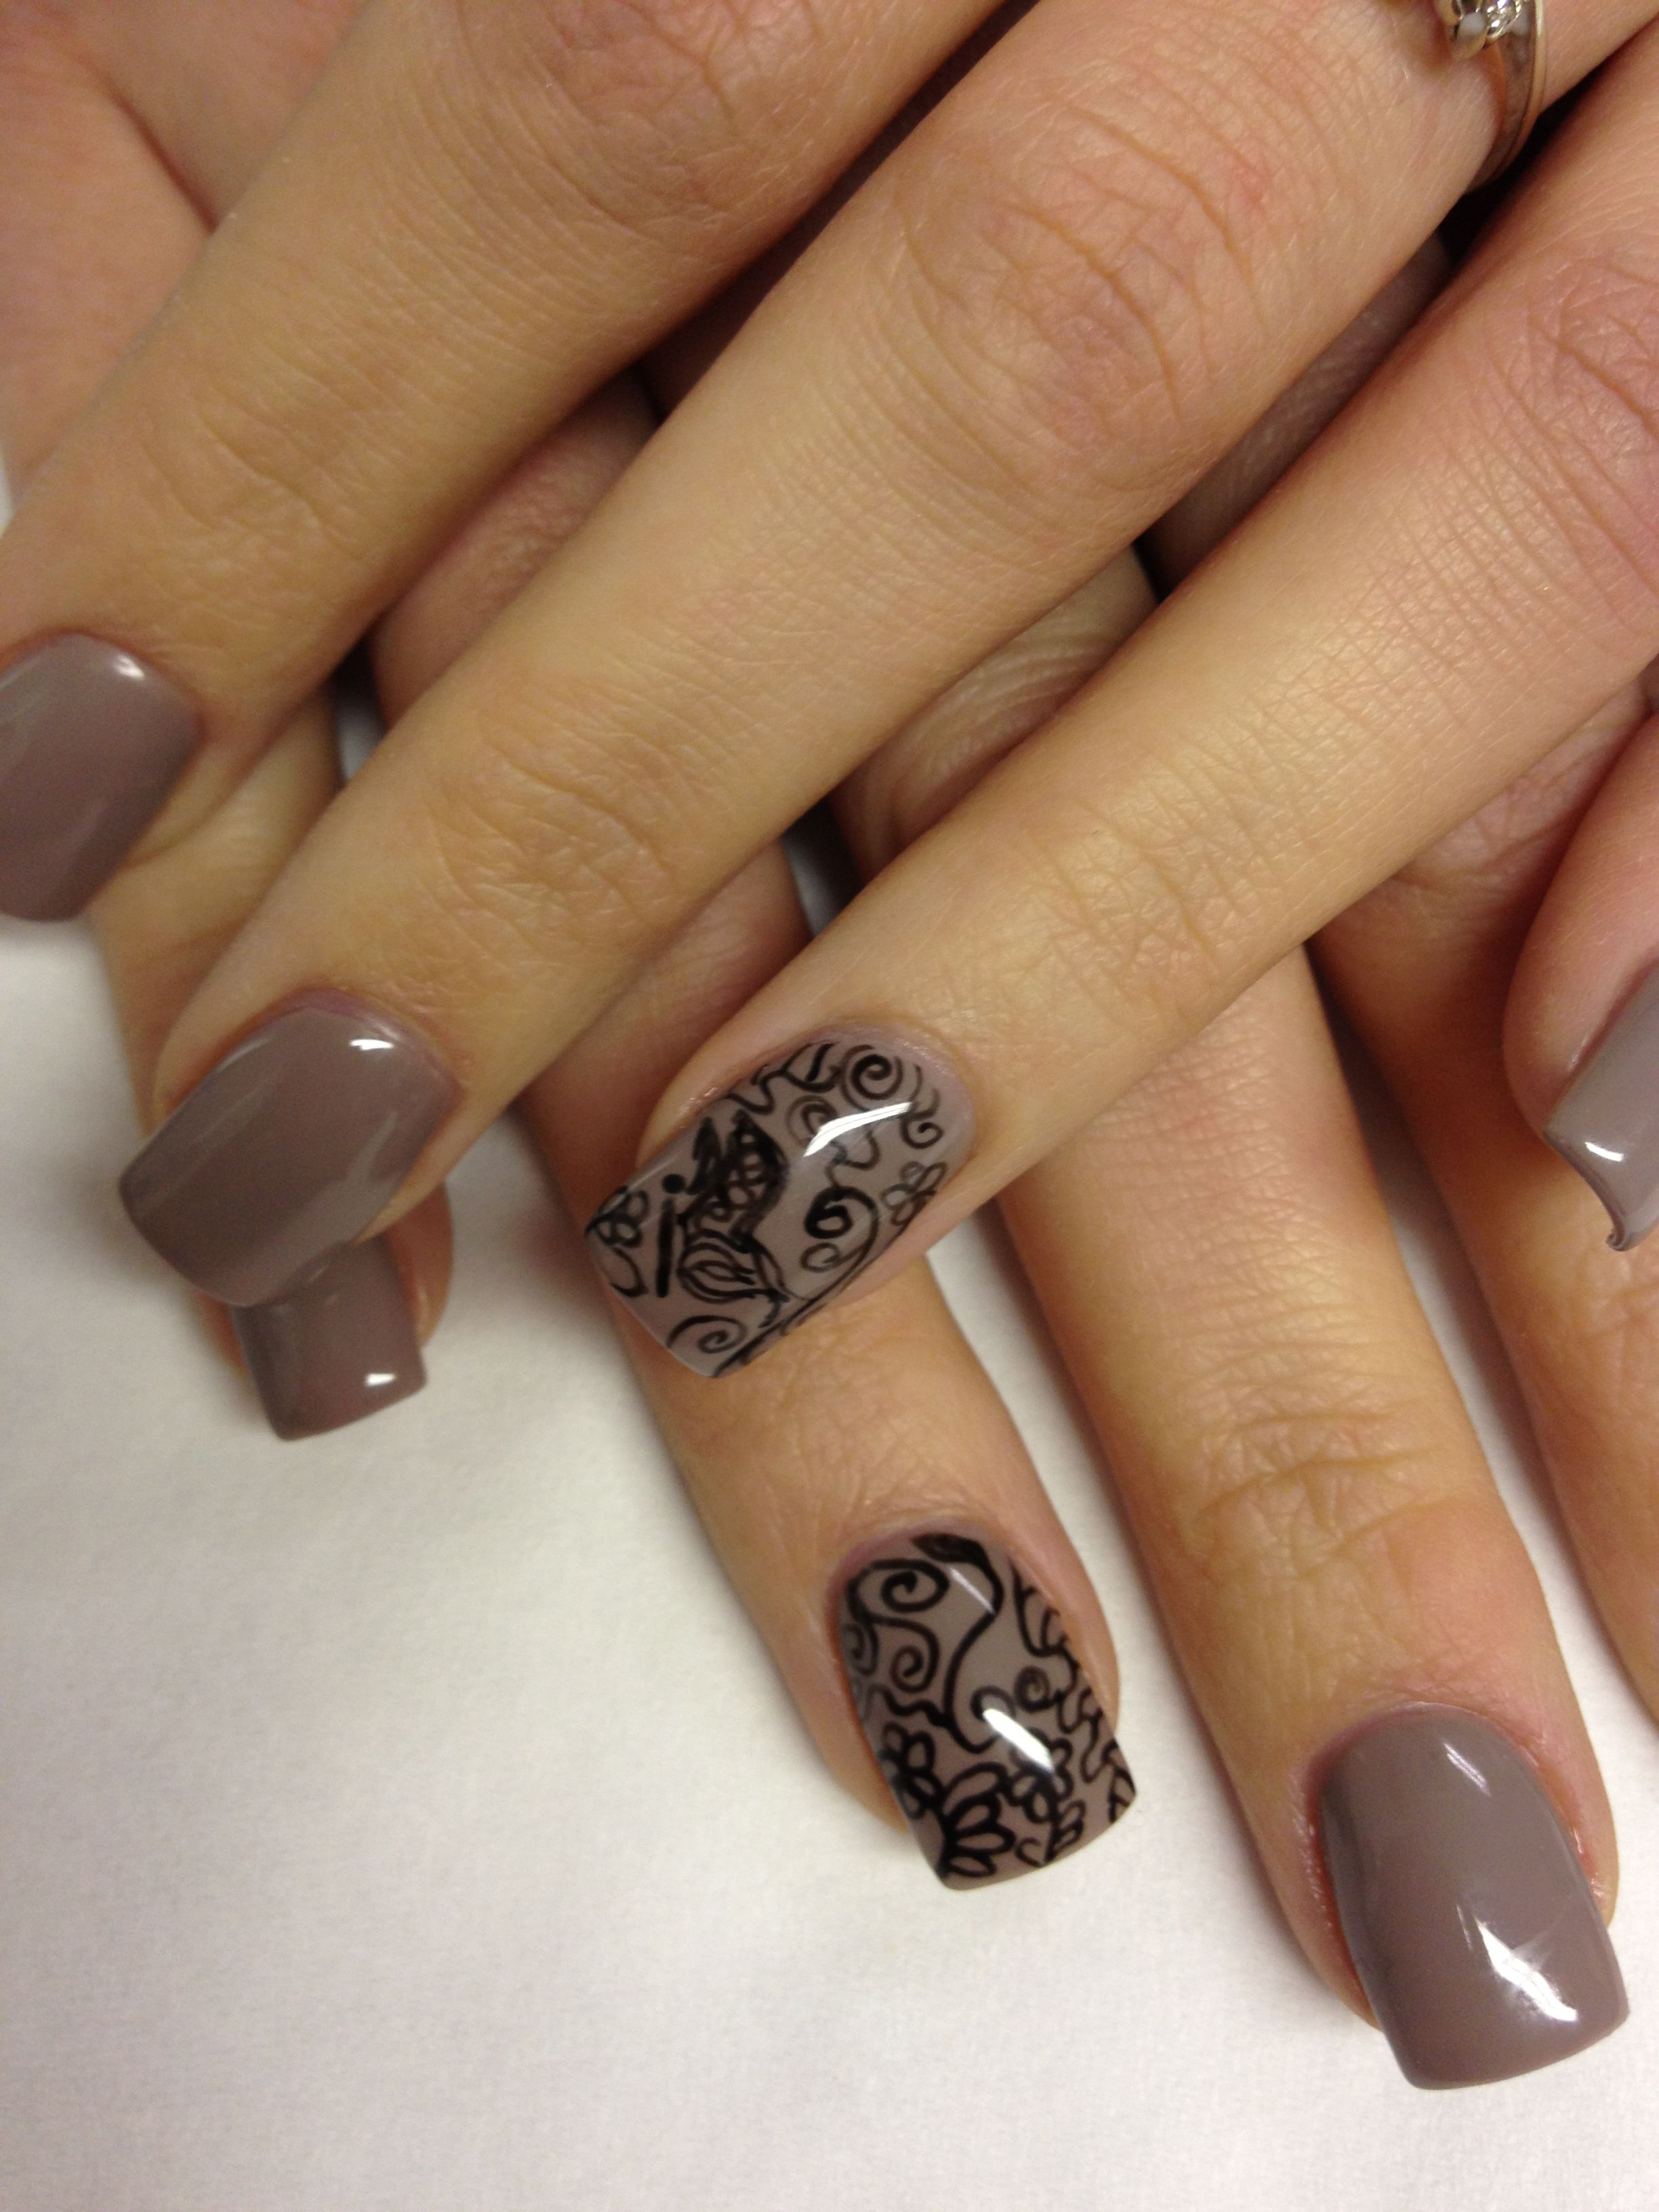 Orly gel fx county club khaki on acrylic nno with doodle ring finger ...